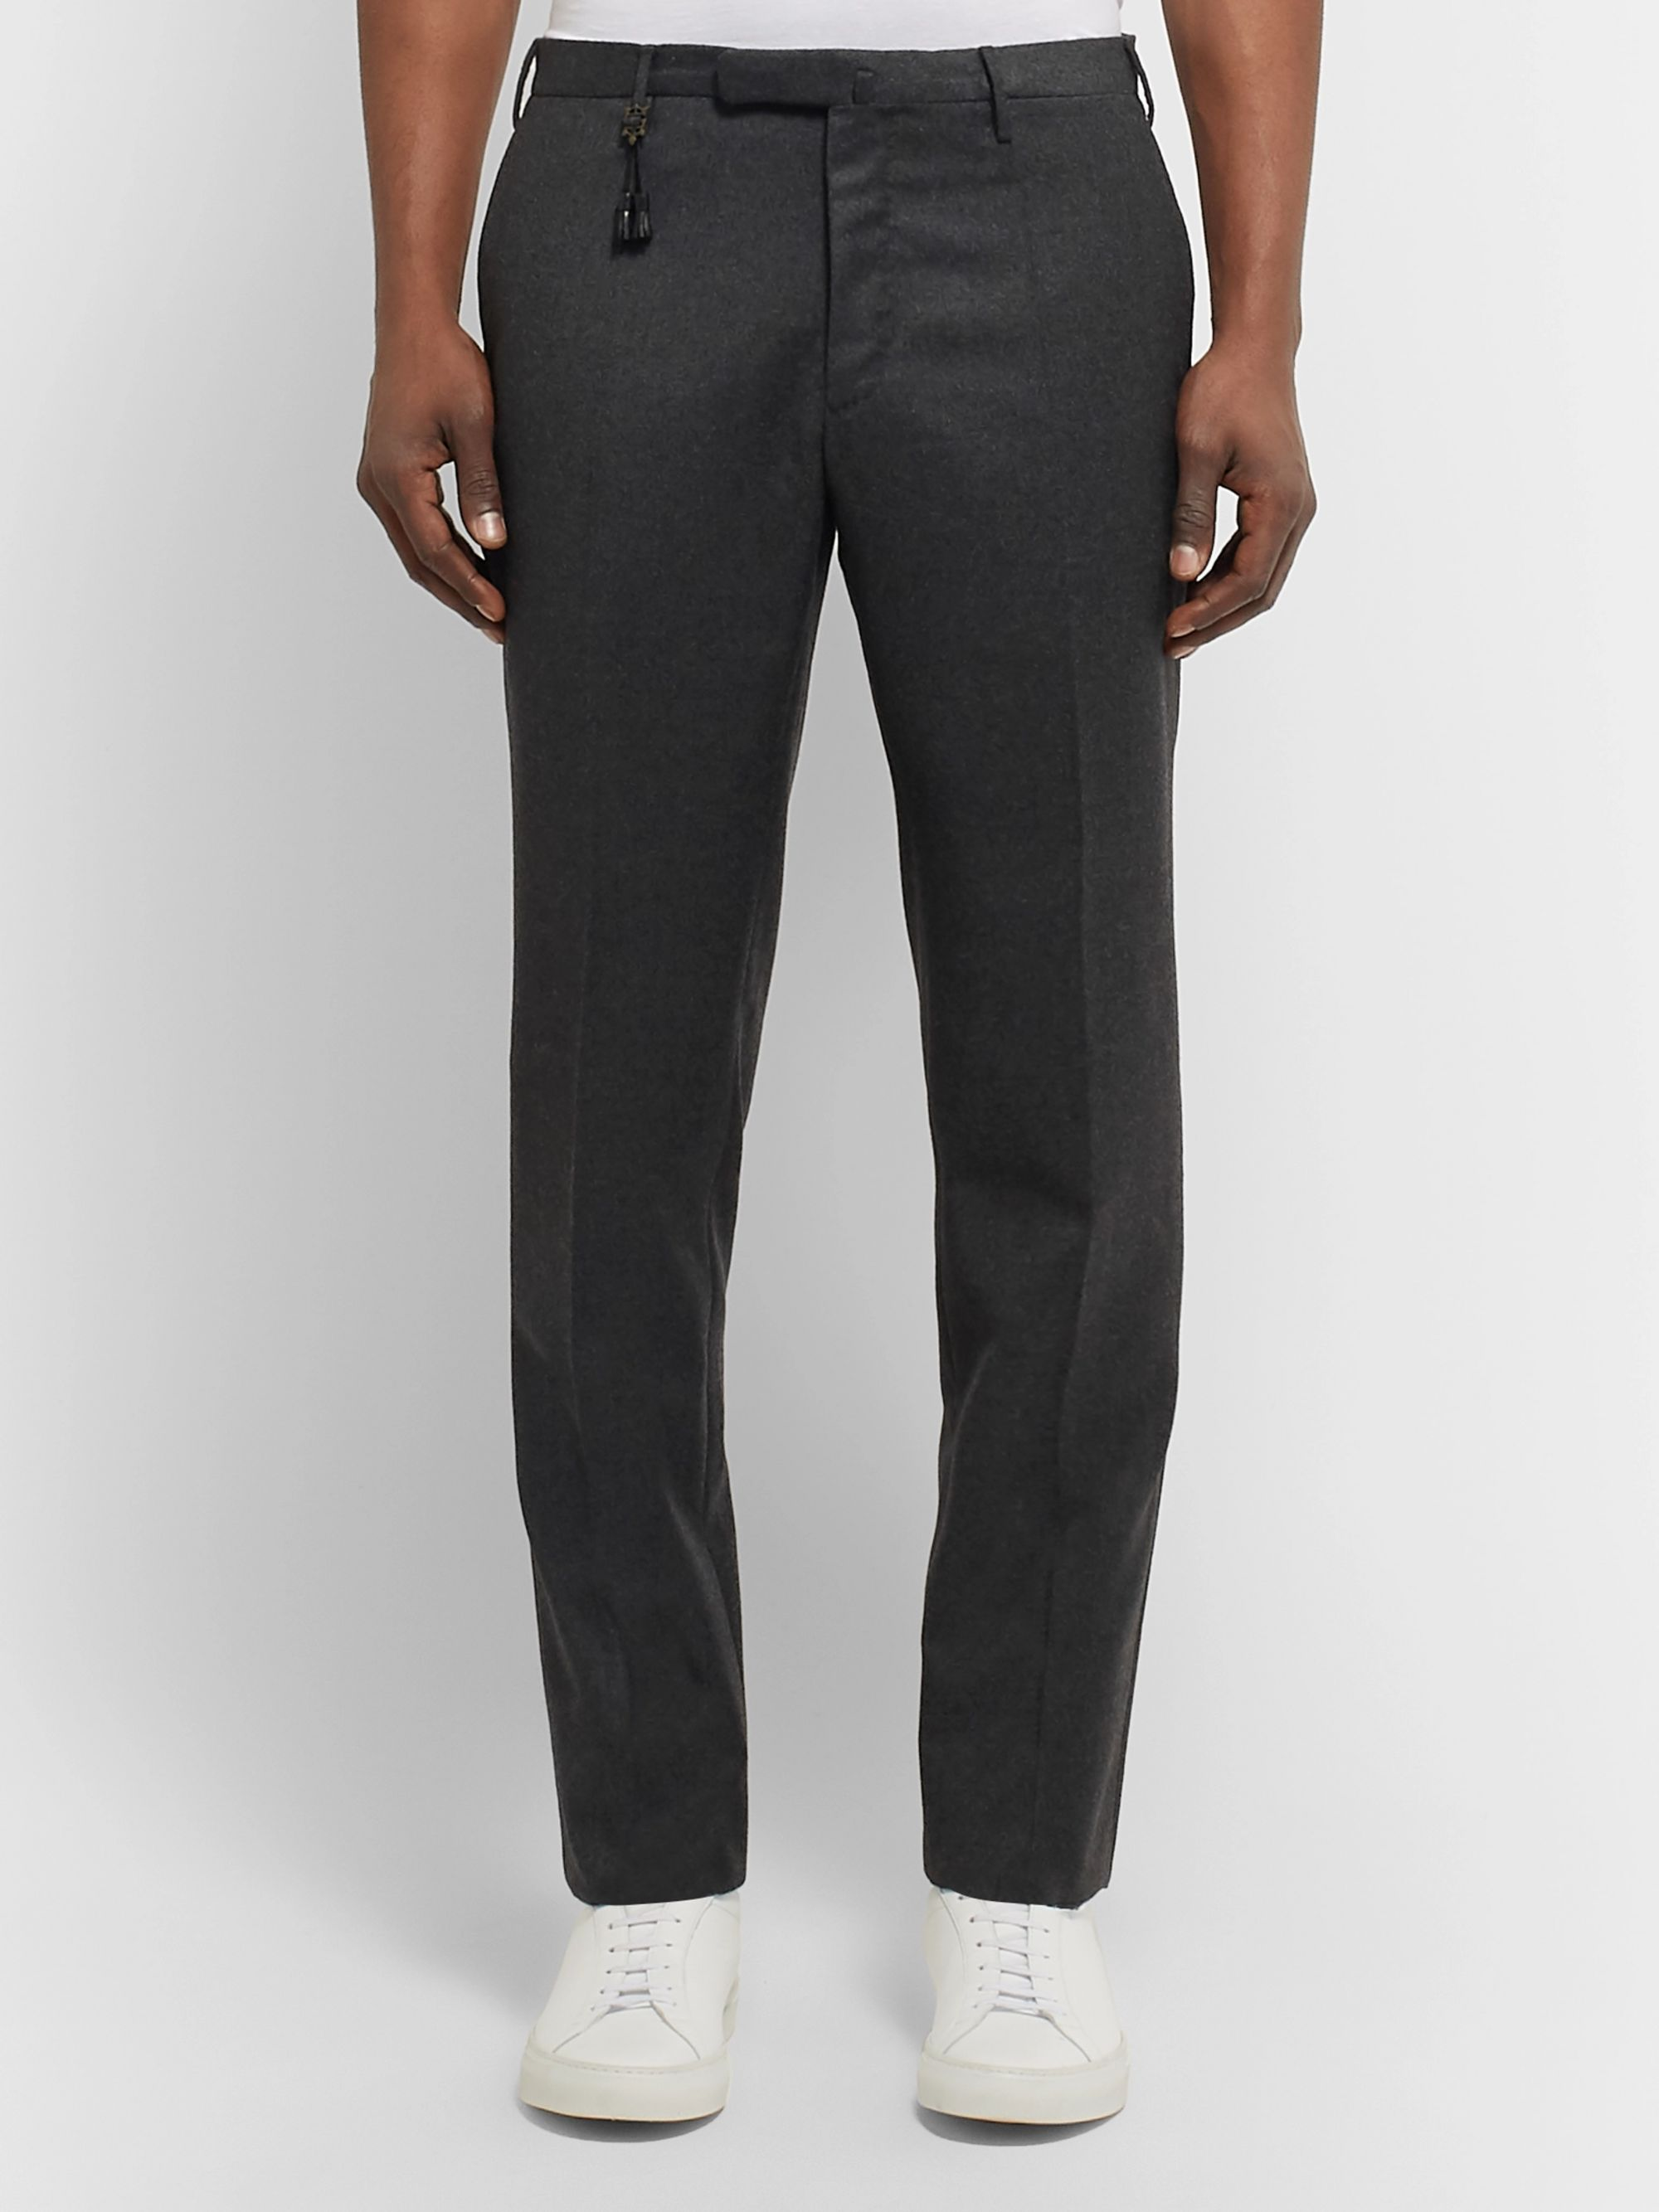 Incotex Charcoal Slim-Fit Brushed-Wool Trousers